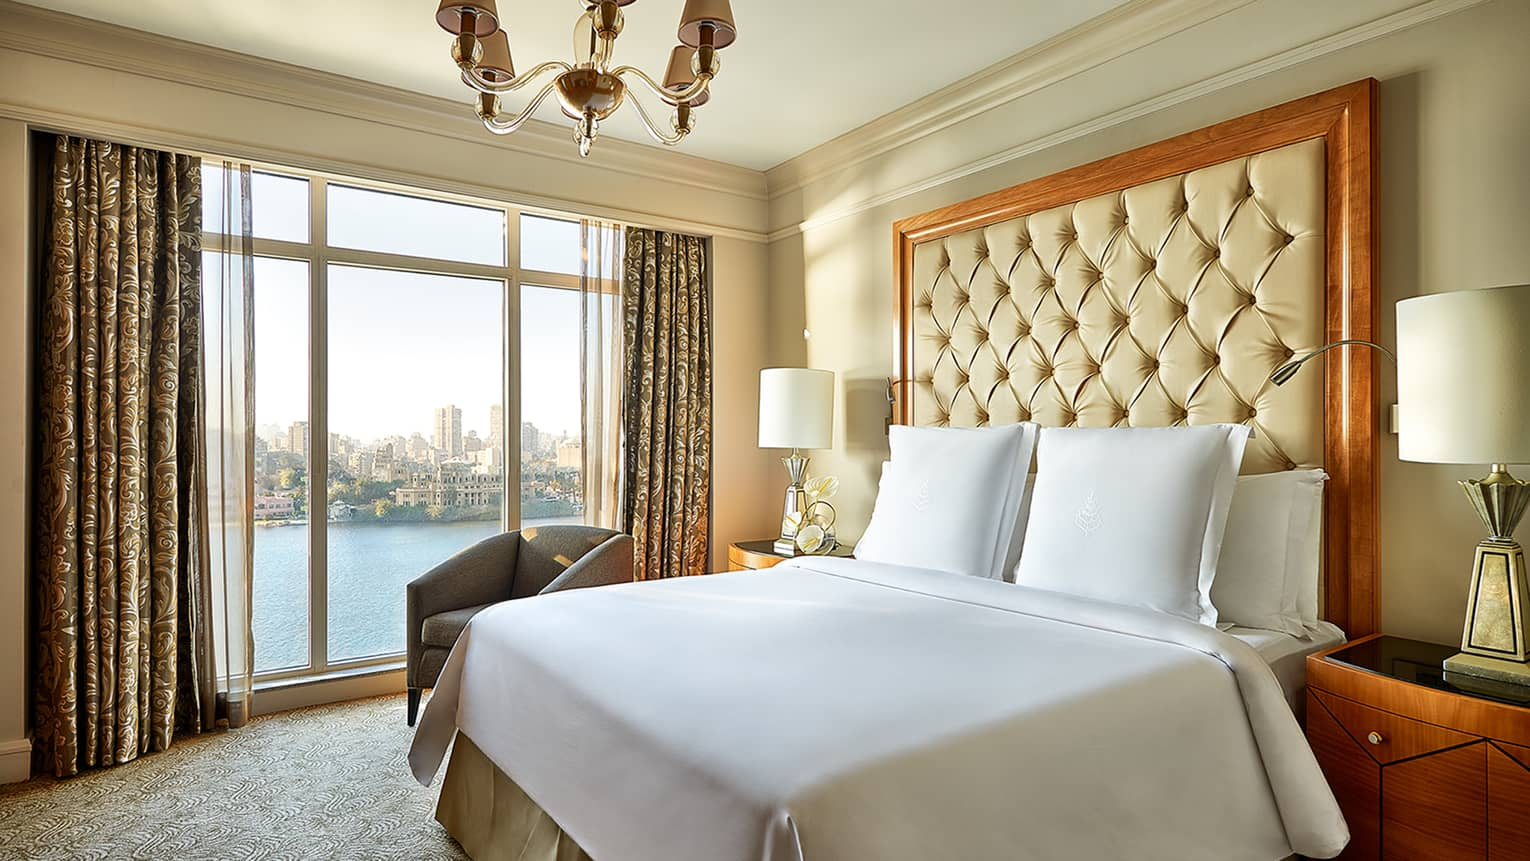 Diplomatic Suite bed with white bedspread, pillows and tall beige leather headboard beside tall window with river view